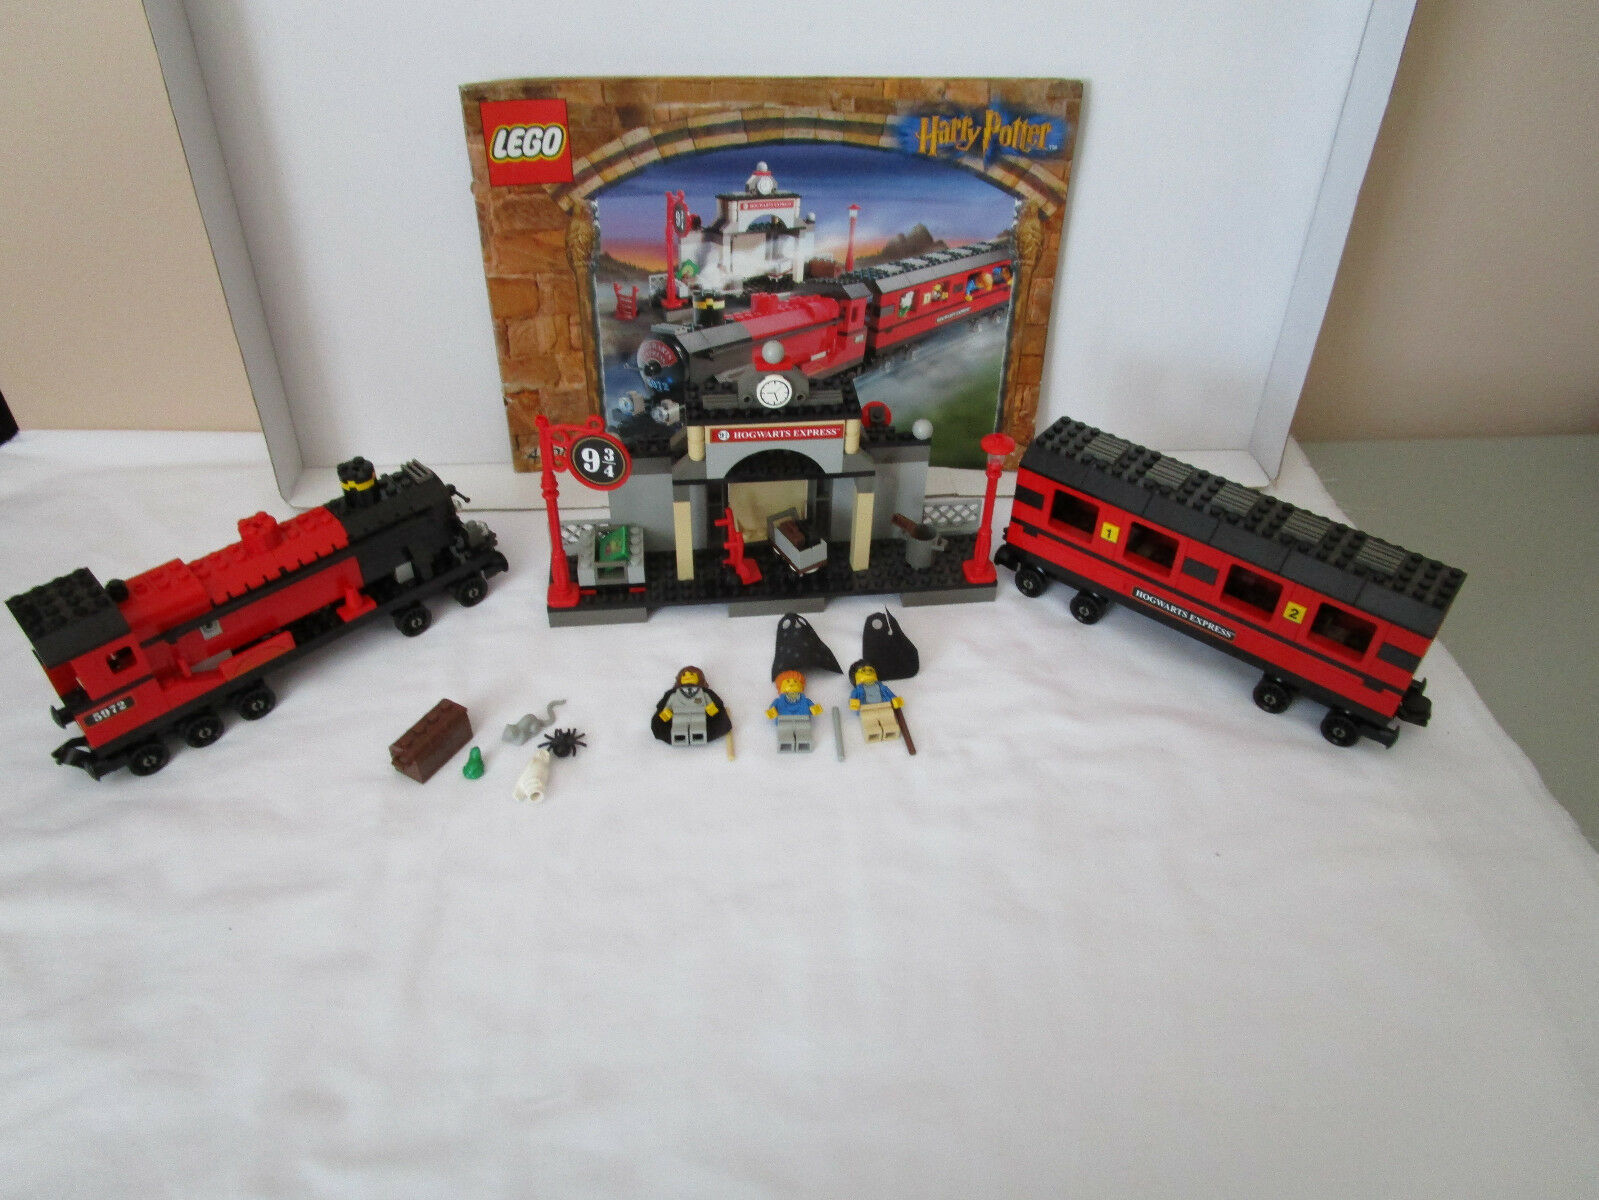 Lego Harry Potter 4708 HOGWARTS EXPRESS TRAIN COMPLETE INSTRUCTIONS LITTLE ROUGH